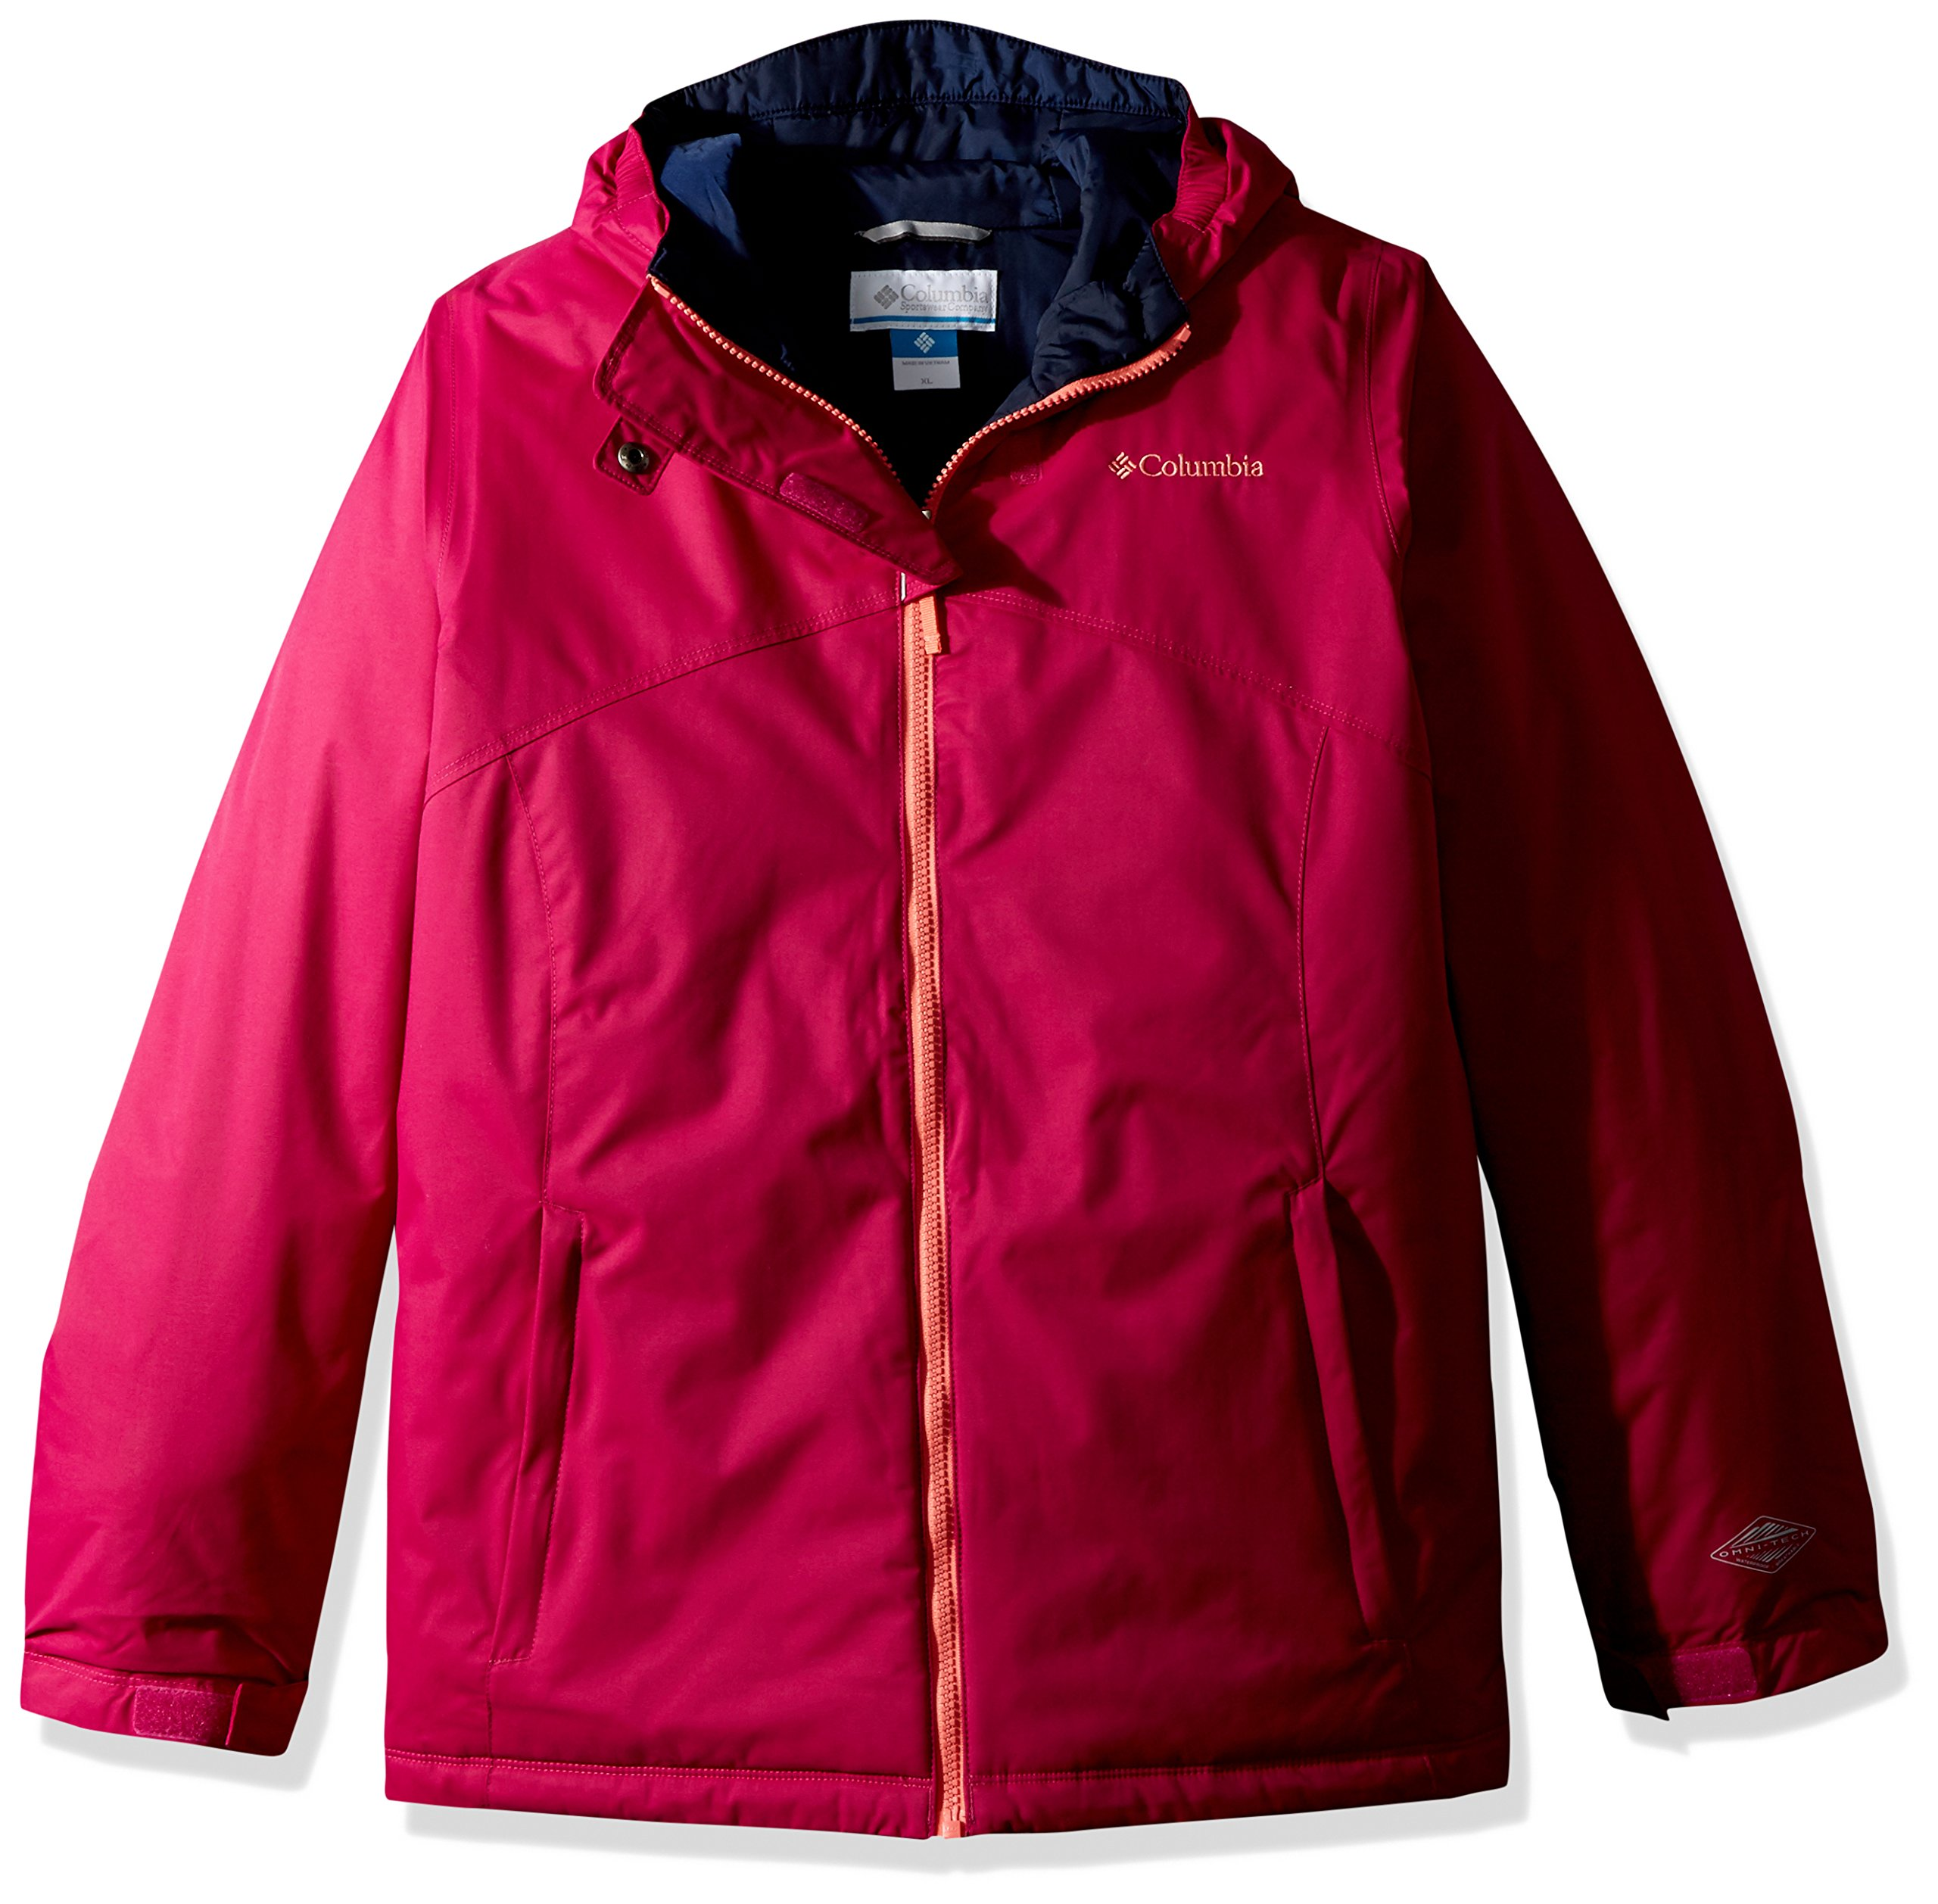 Columbia Girls Crash Course Jacket, Deep Blush, Large by Columbia